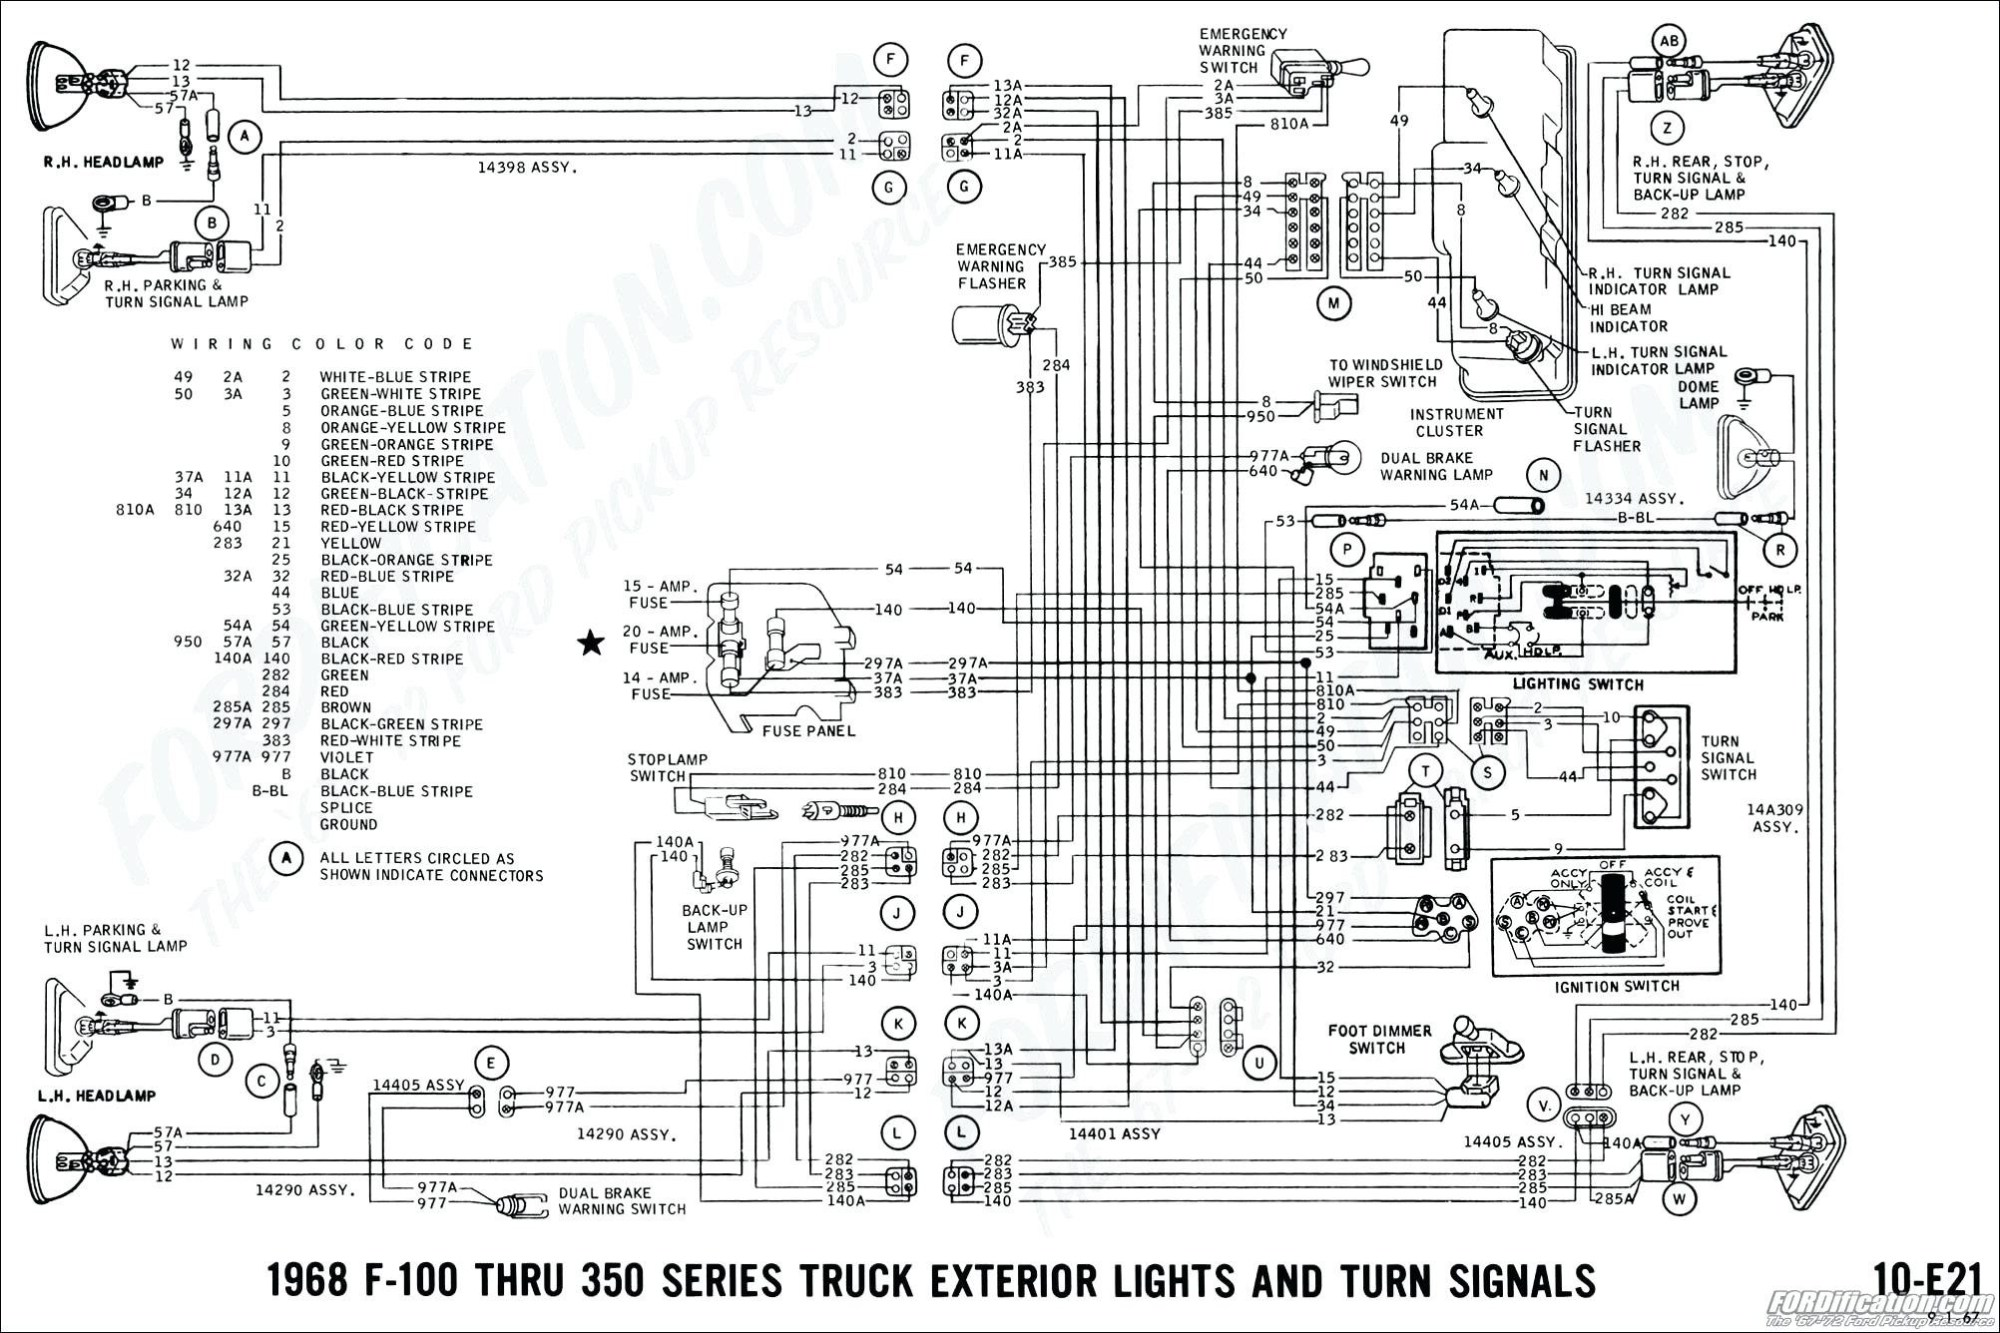 hight resolution of ford f800 wiring diagram for lights wiring library 1985 ford f800 1990 ford f800 wiring